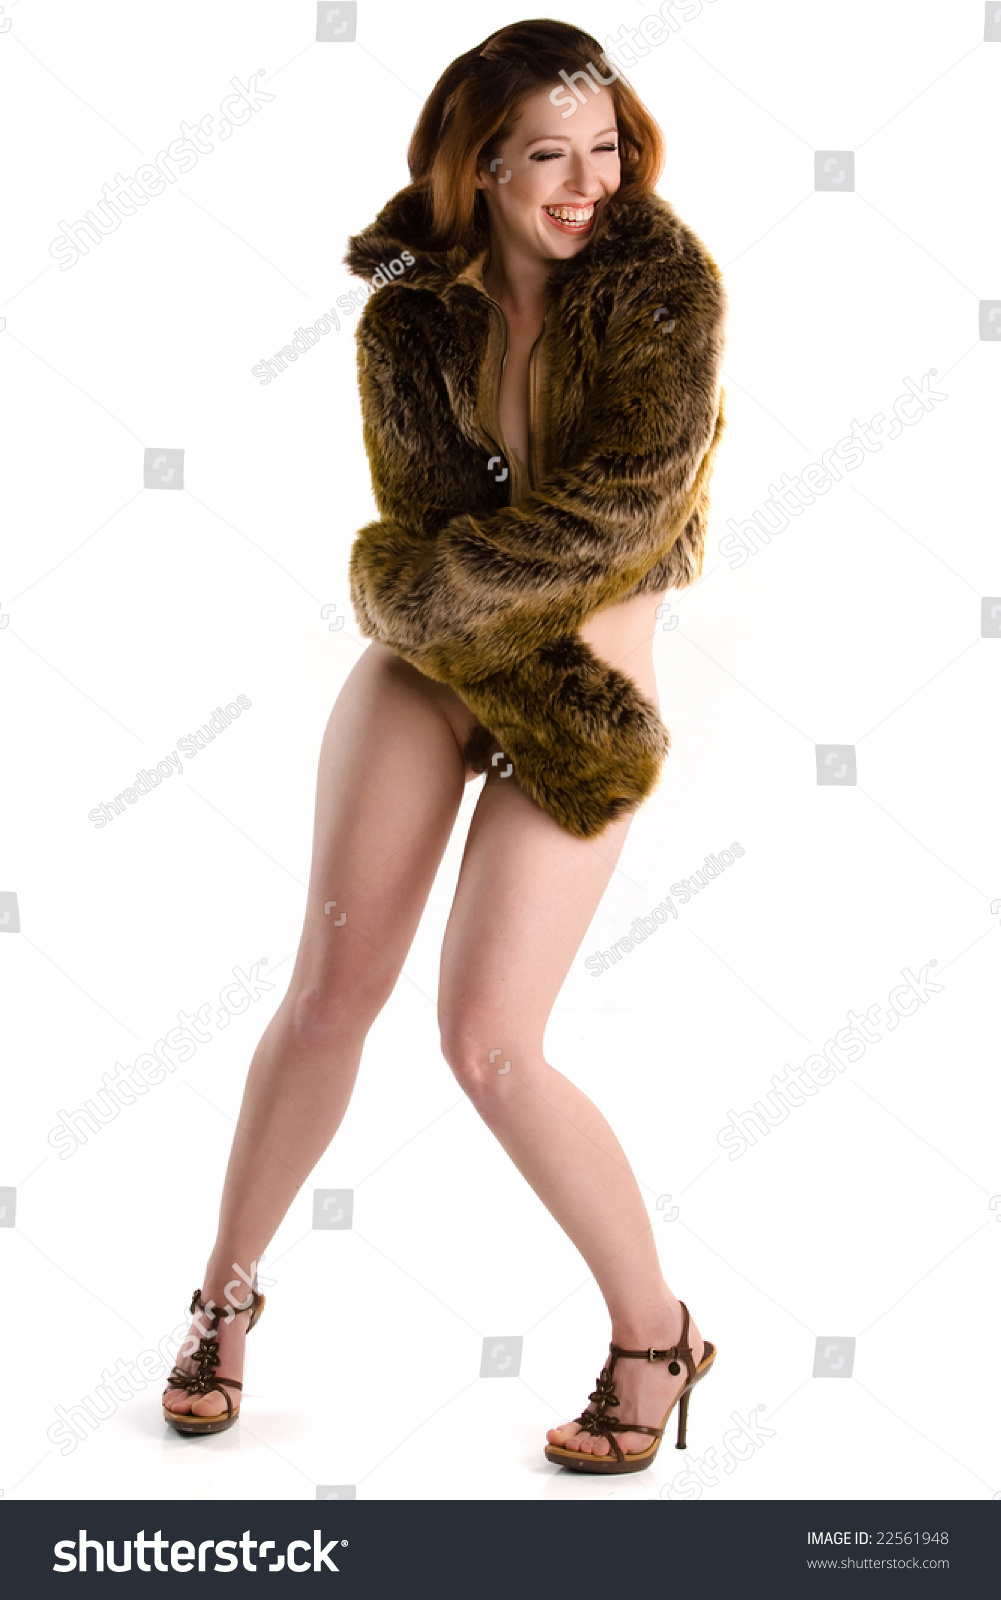 bottomless girl laughing pin-up girl in fur coat bottomless